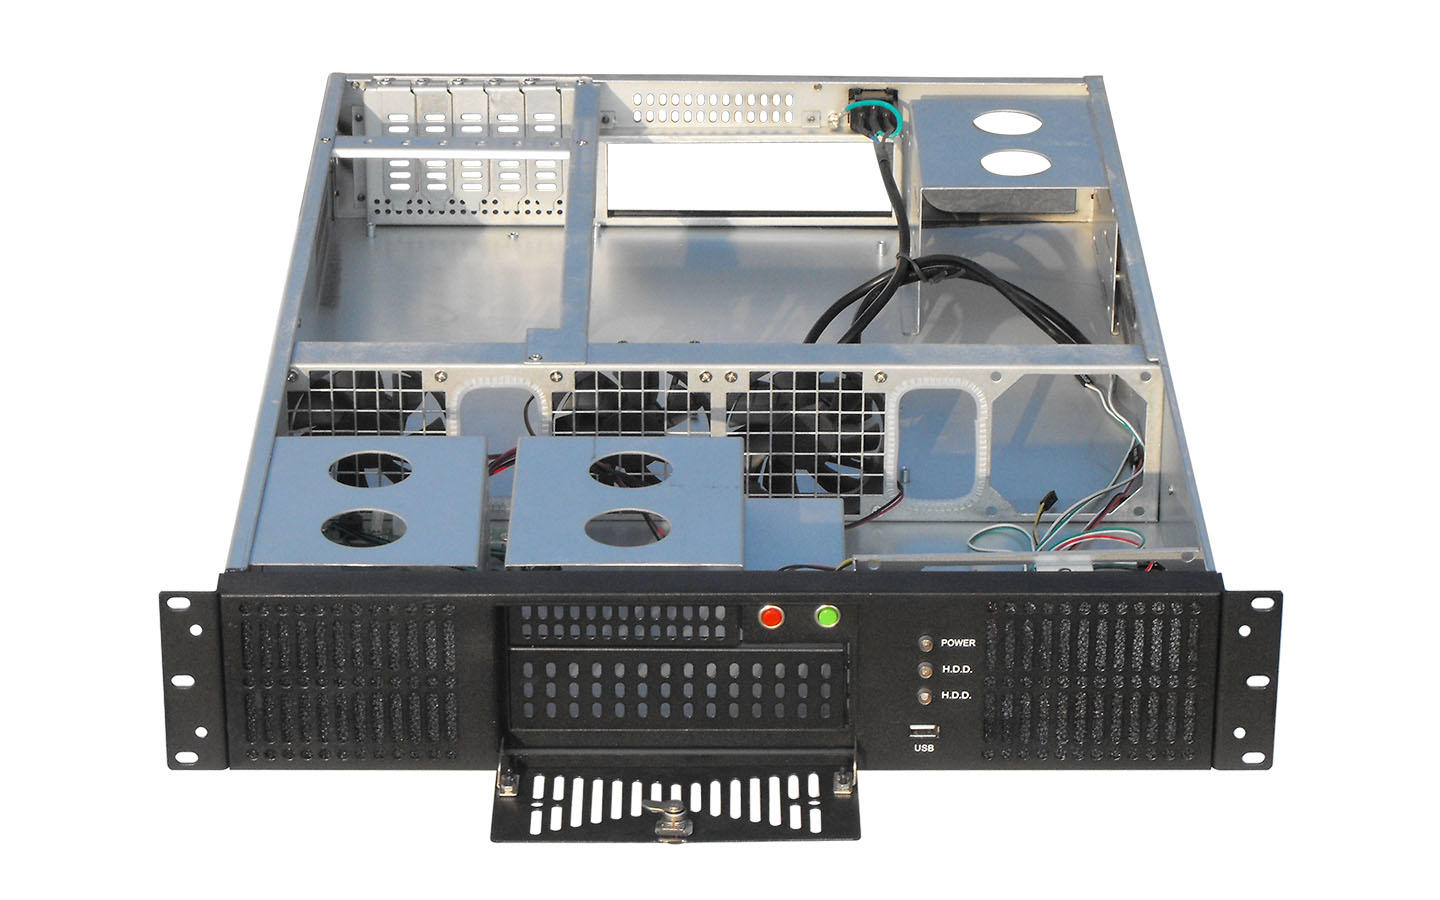 2U server case Both the rwo sided of chassis and front panel are designed with radiating 4x standard matching 8025 fans